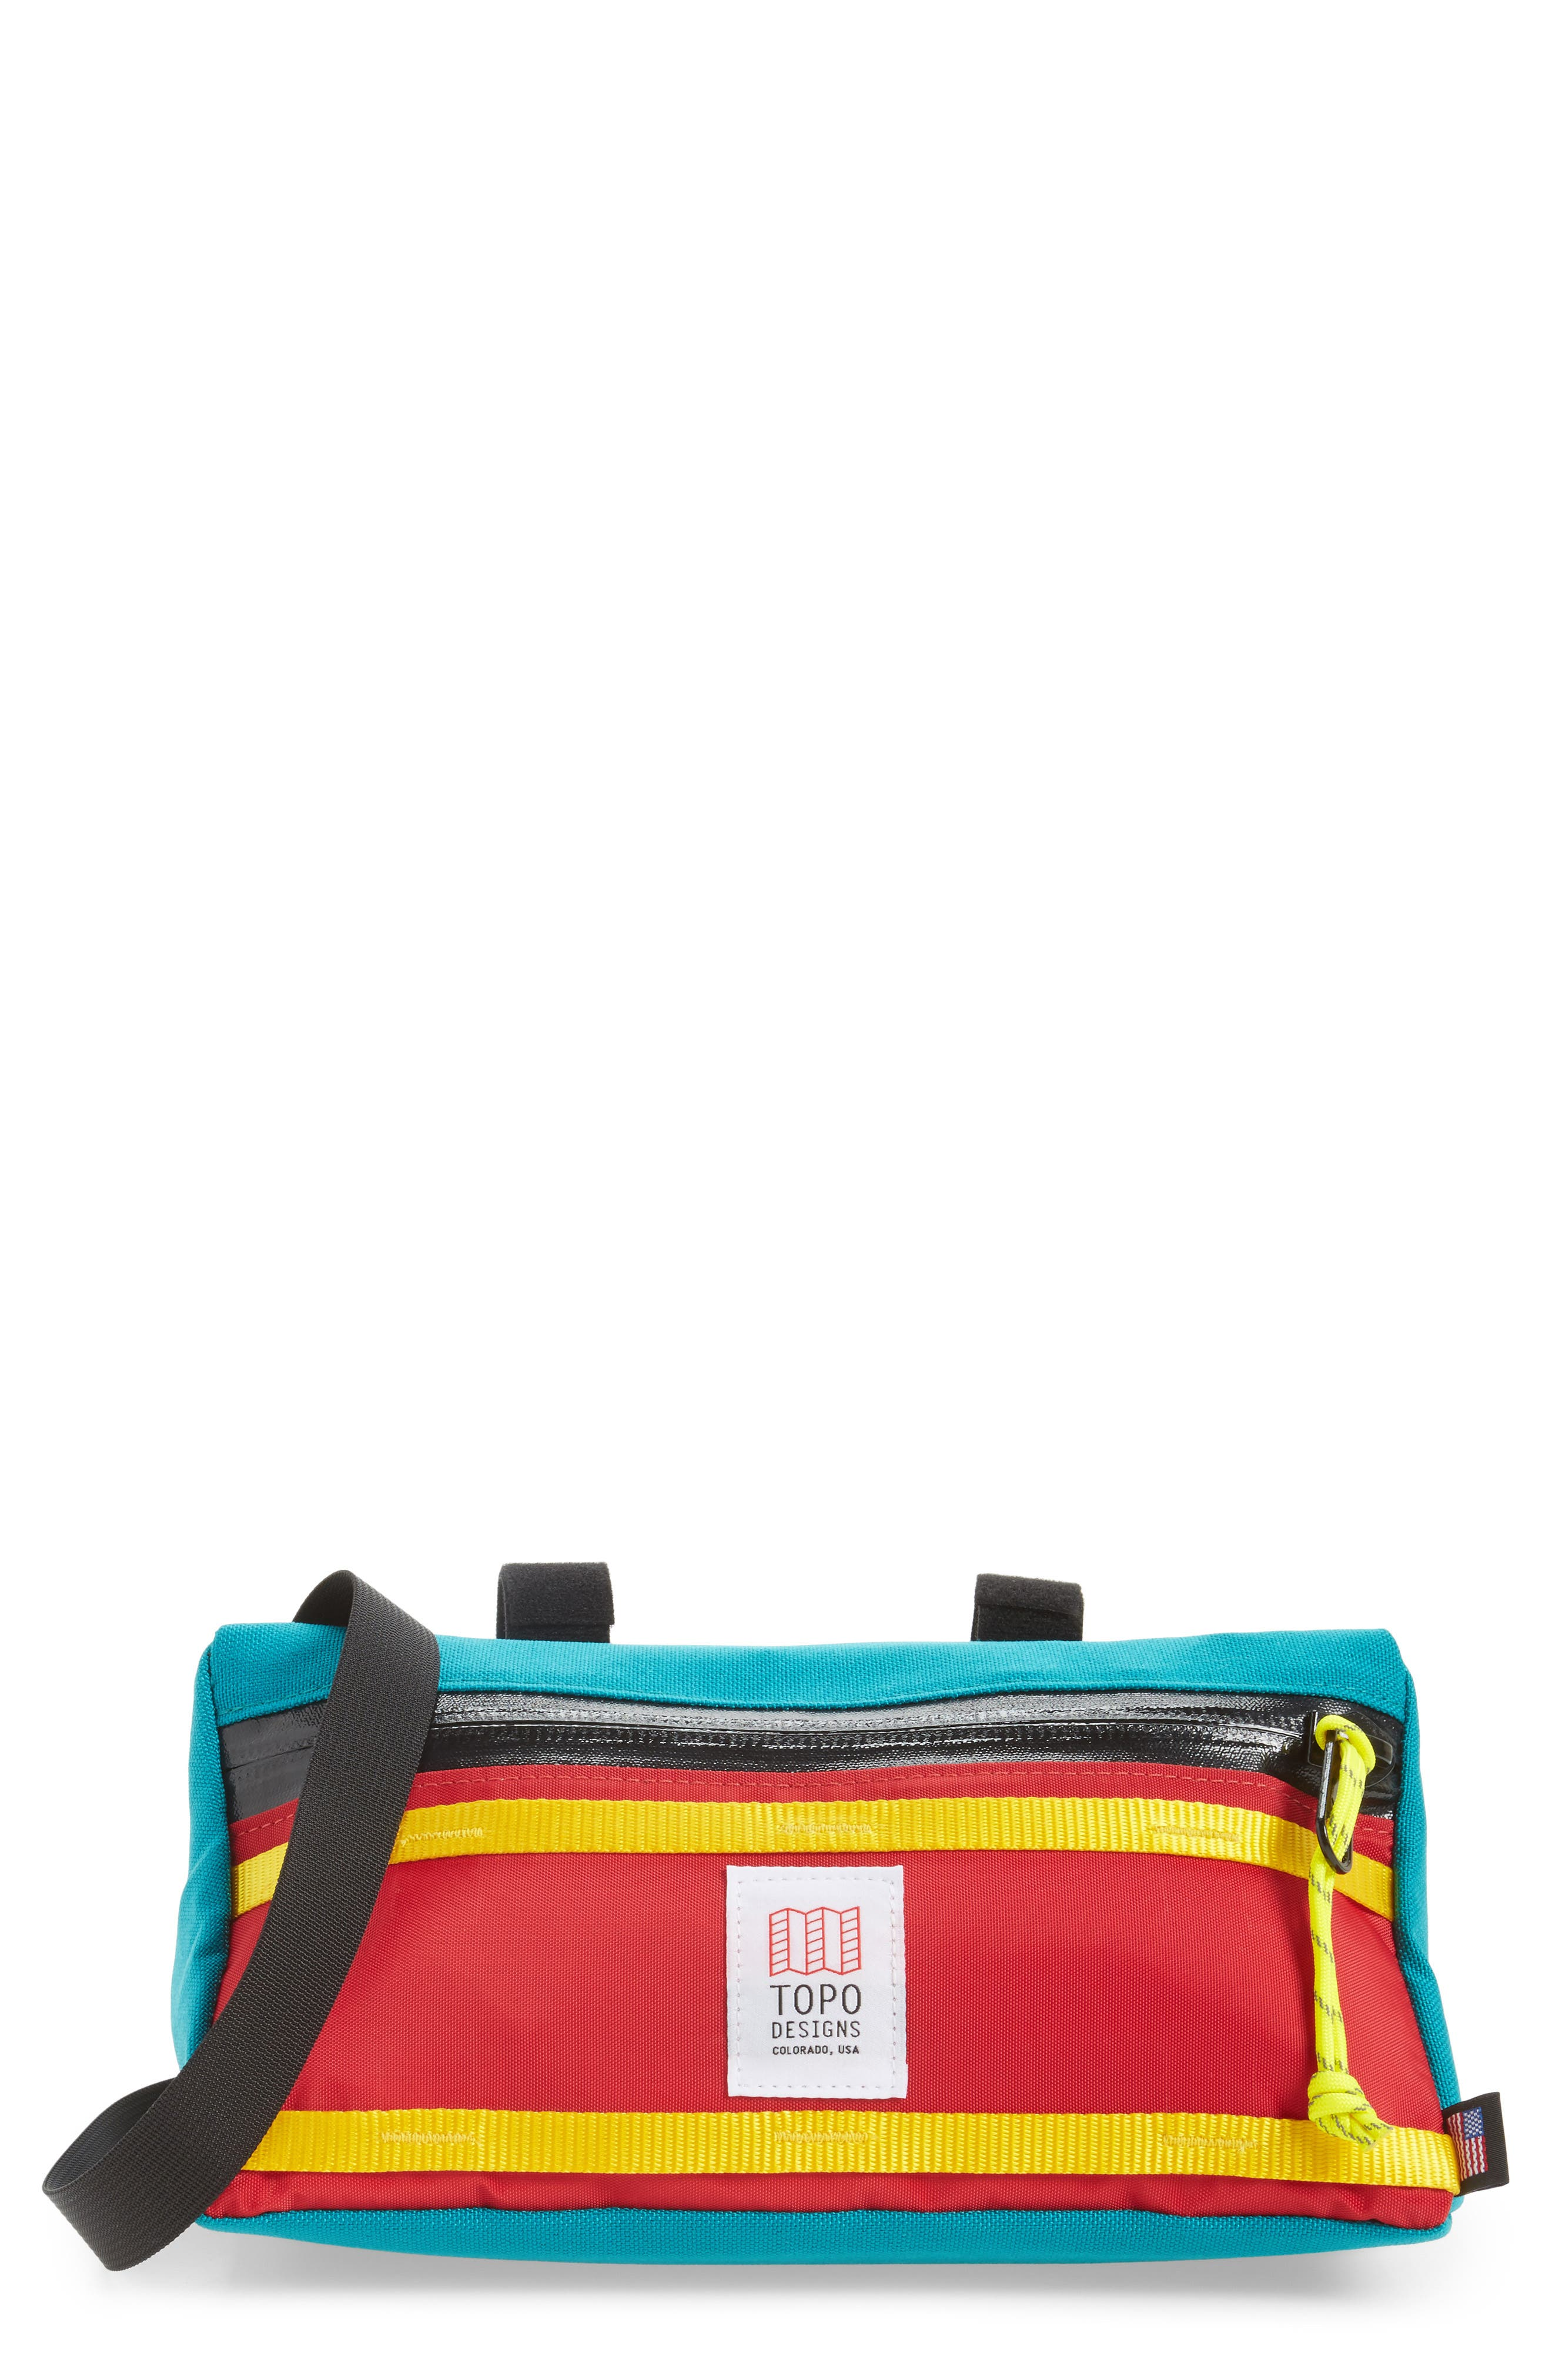 TOPO DESIGNS BIKE BAG - BLUE